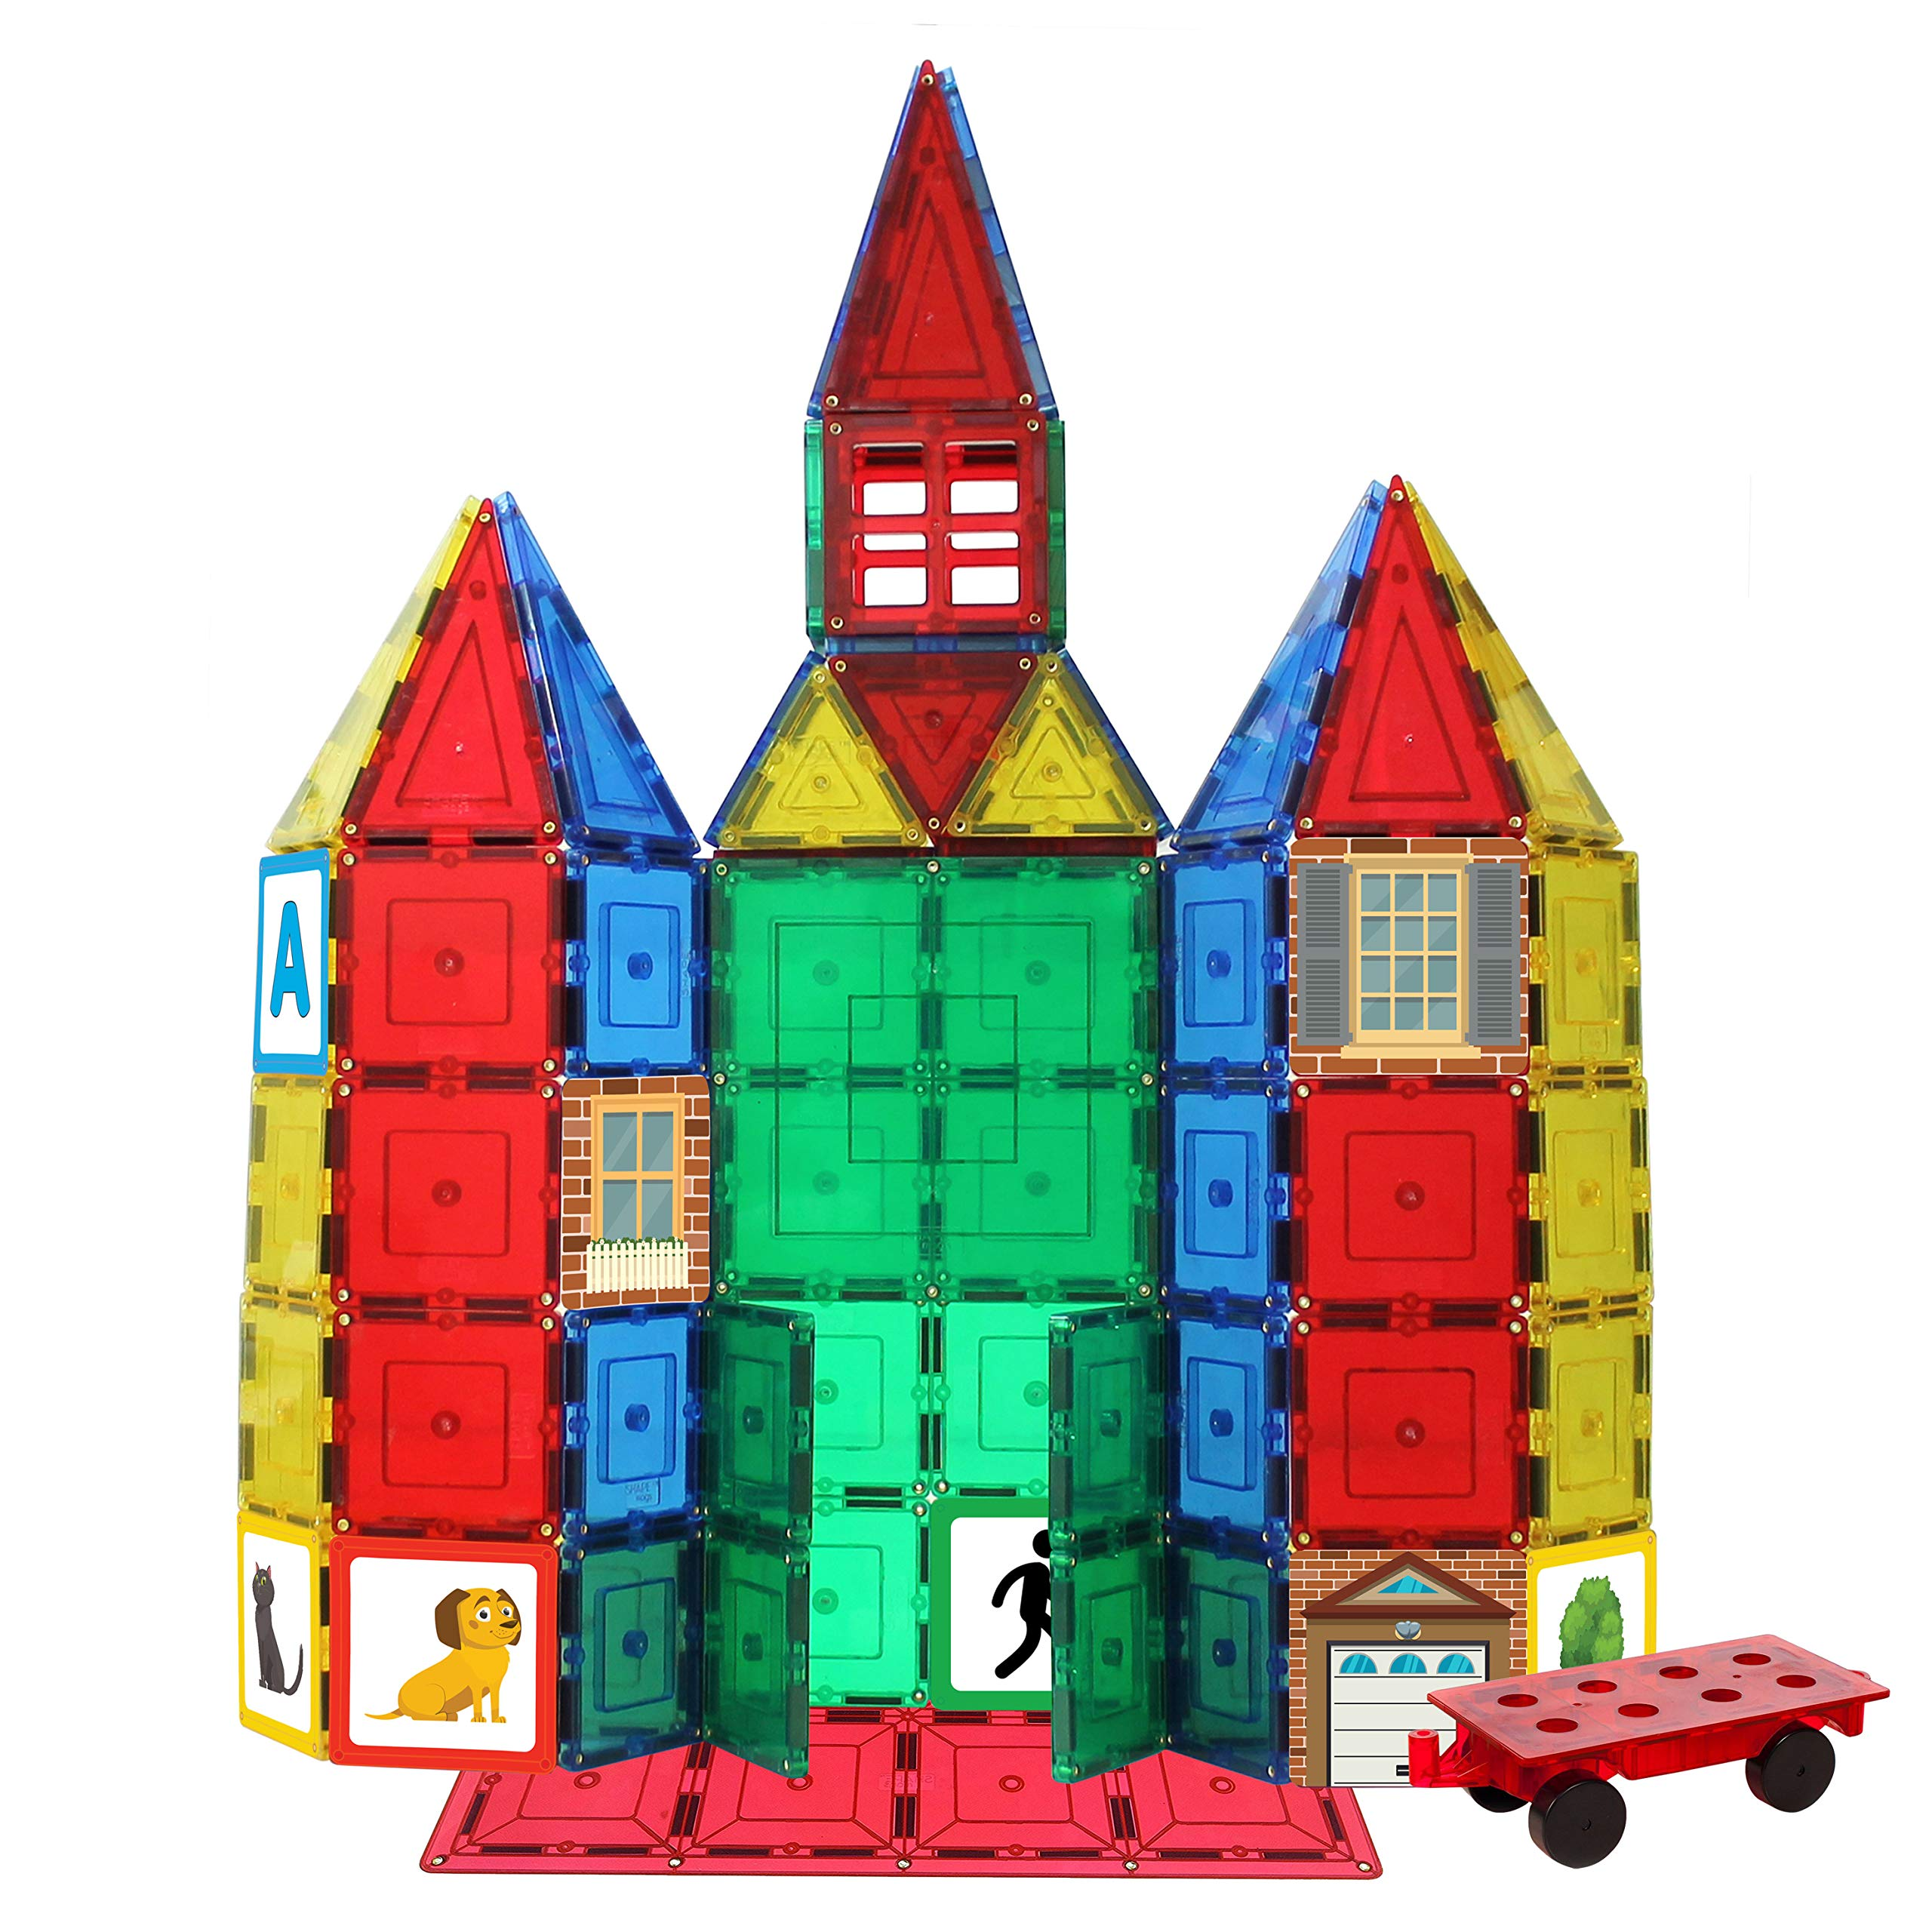 Shapemags 100 Piece Tiles Set Clear Colors Magnetic Blocks, Made with Power+Magnets, Includes 24 StileMags, a 12X12 Stabilizer Plate and Car Base